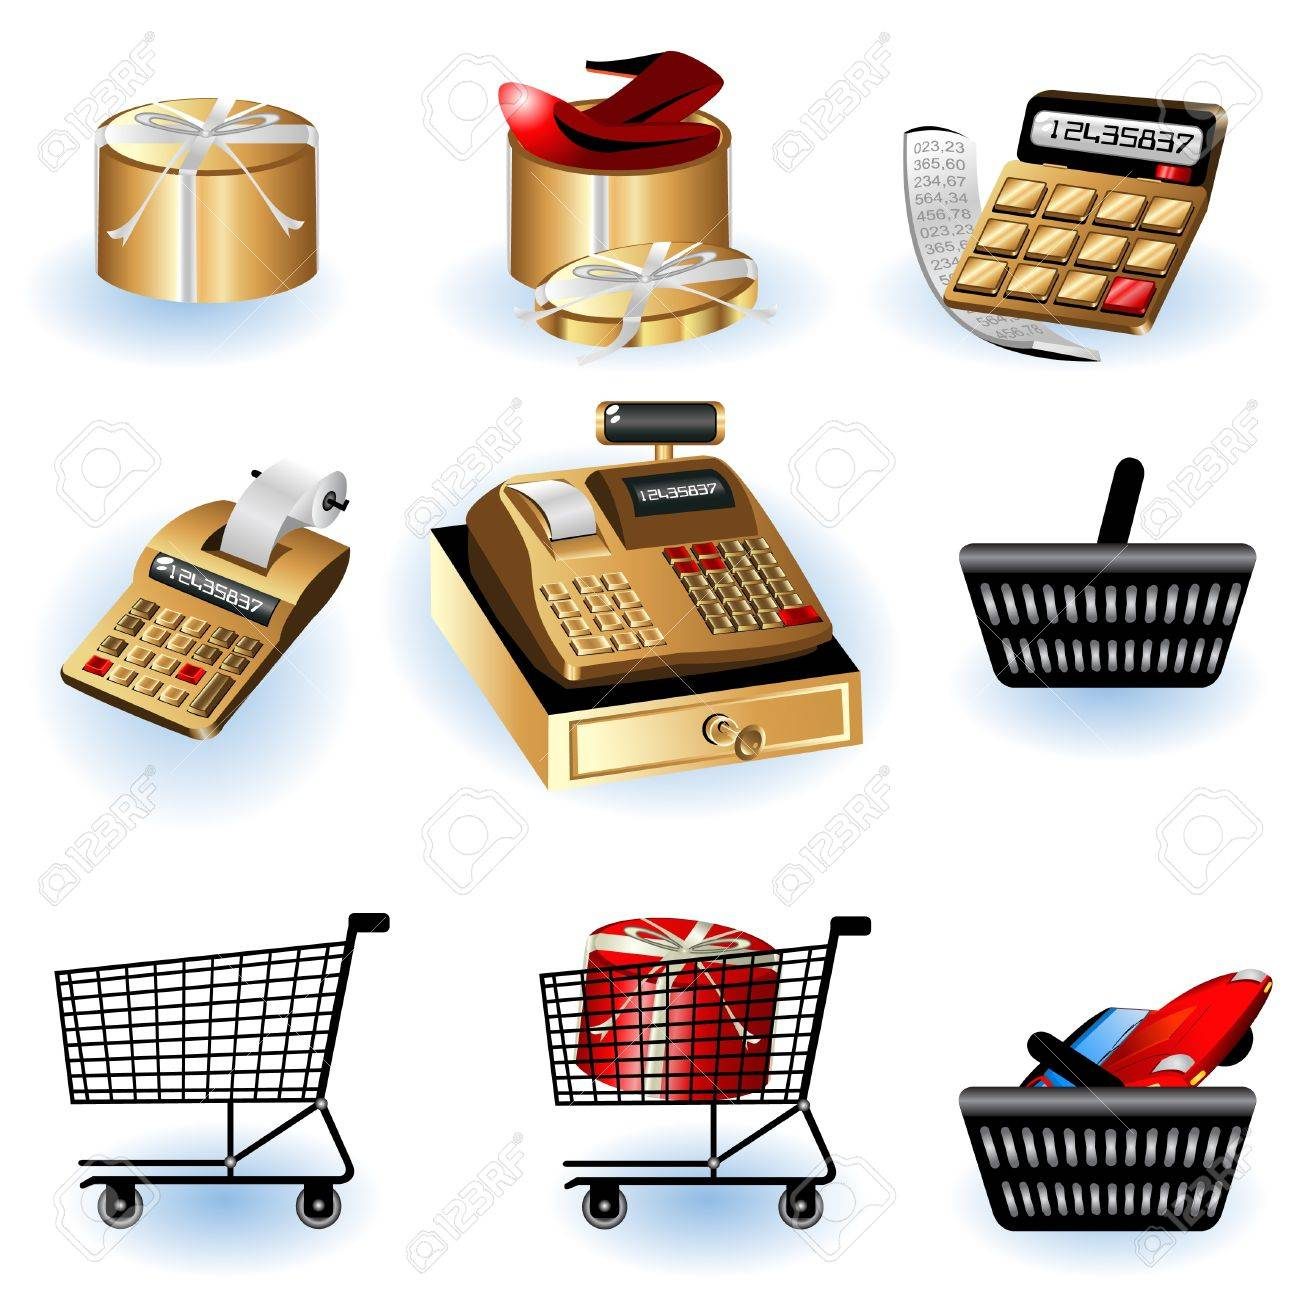 A collection of different shopping icons - part 2 Stock Vector - 9200036